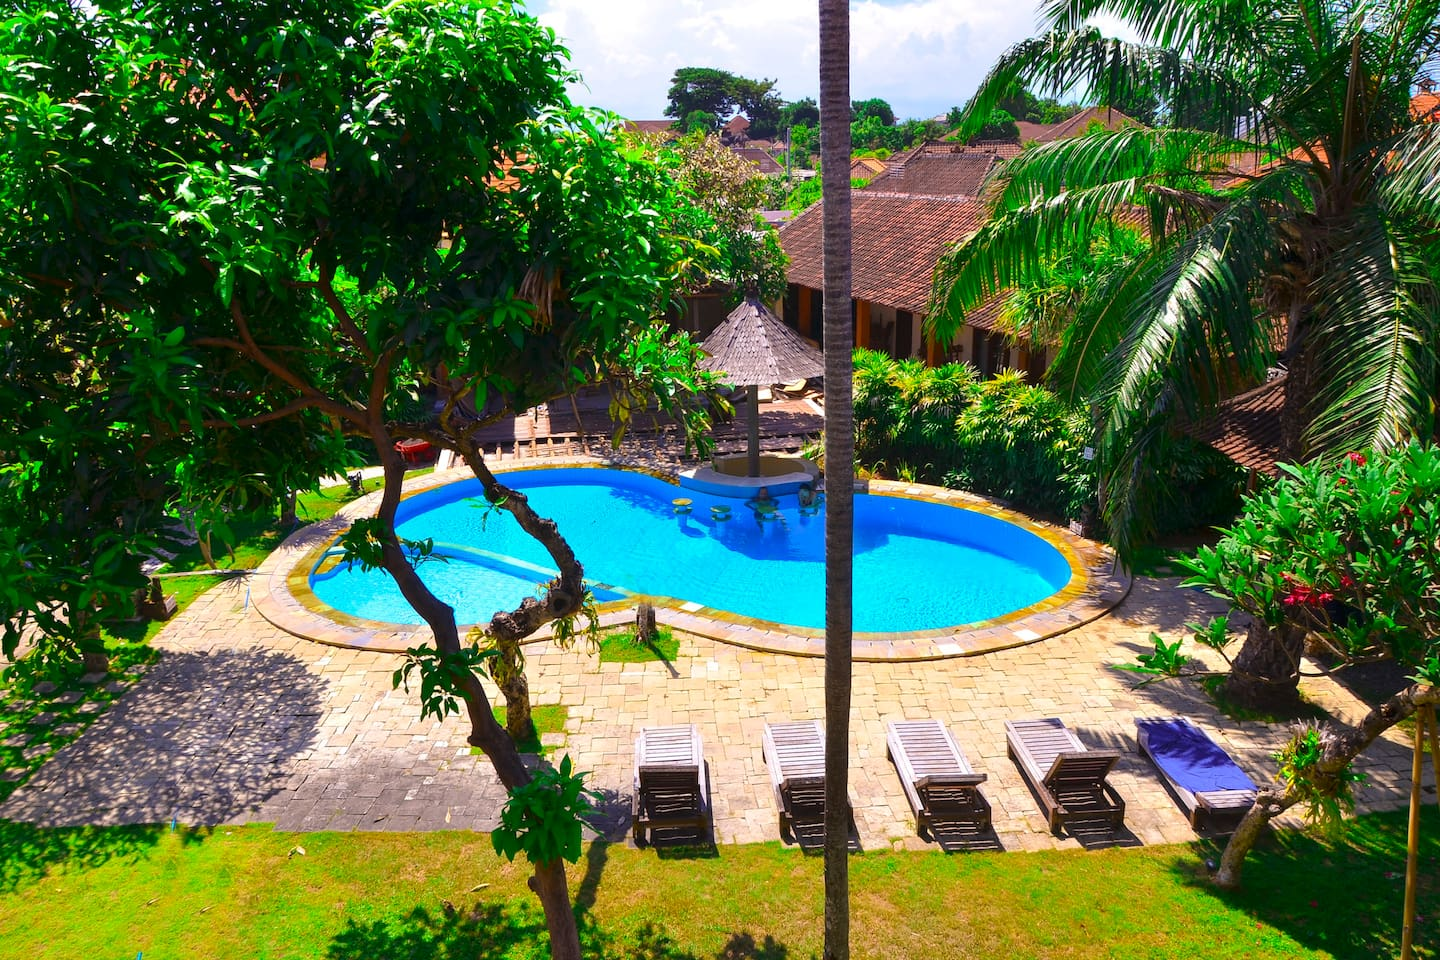 View pool from top balcony